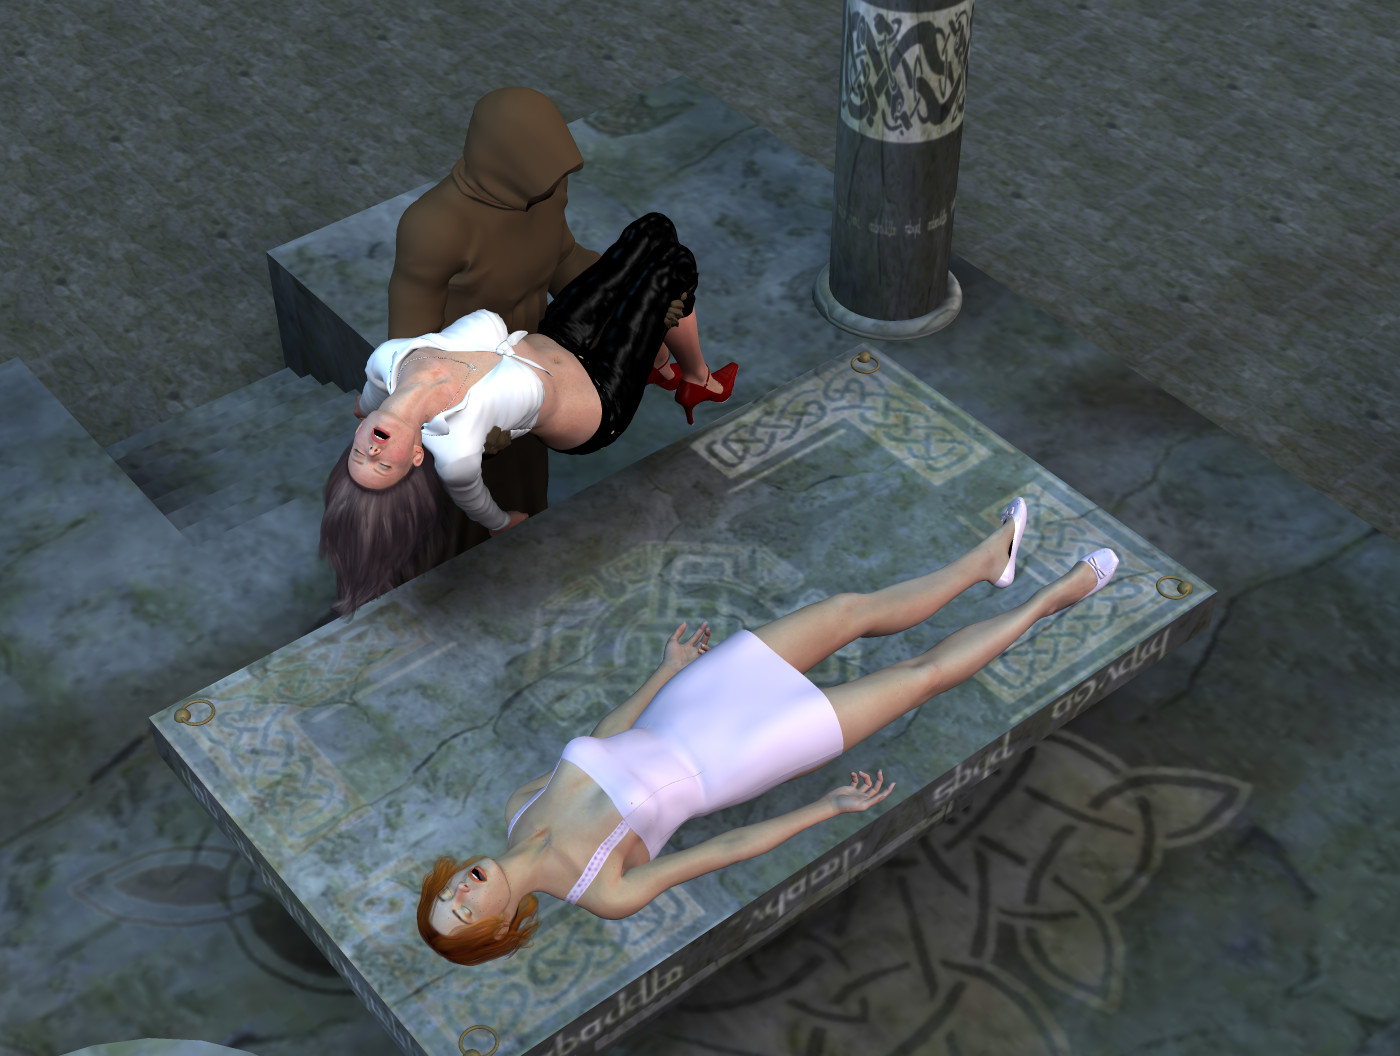 Young female human sacrifice erotic pictures